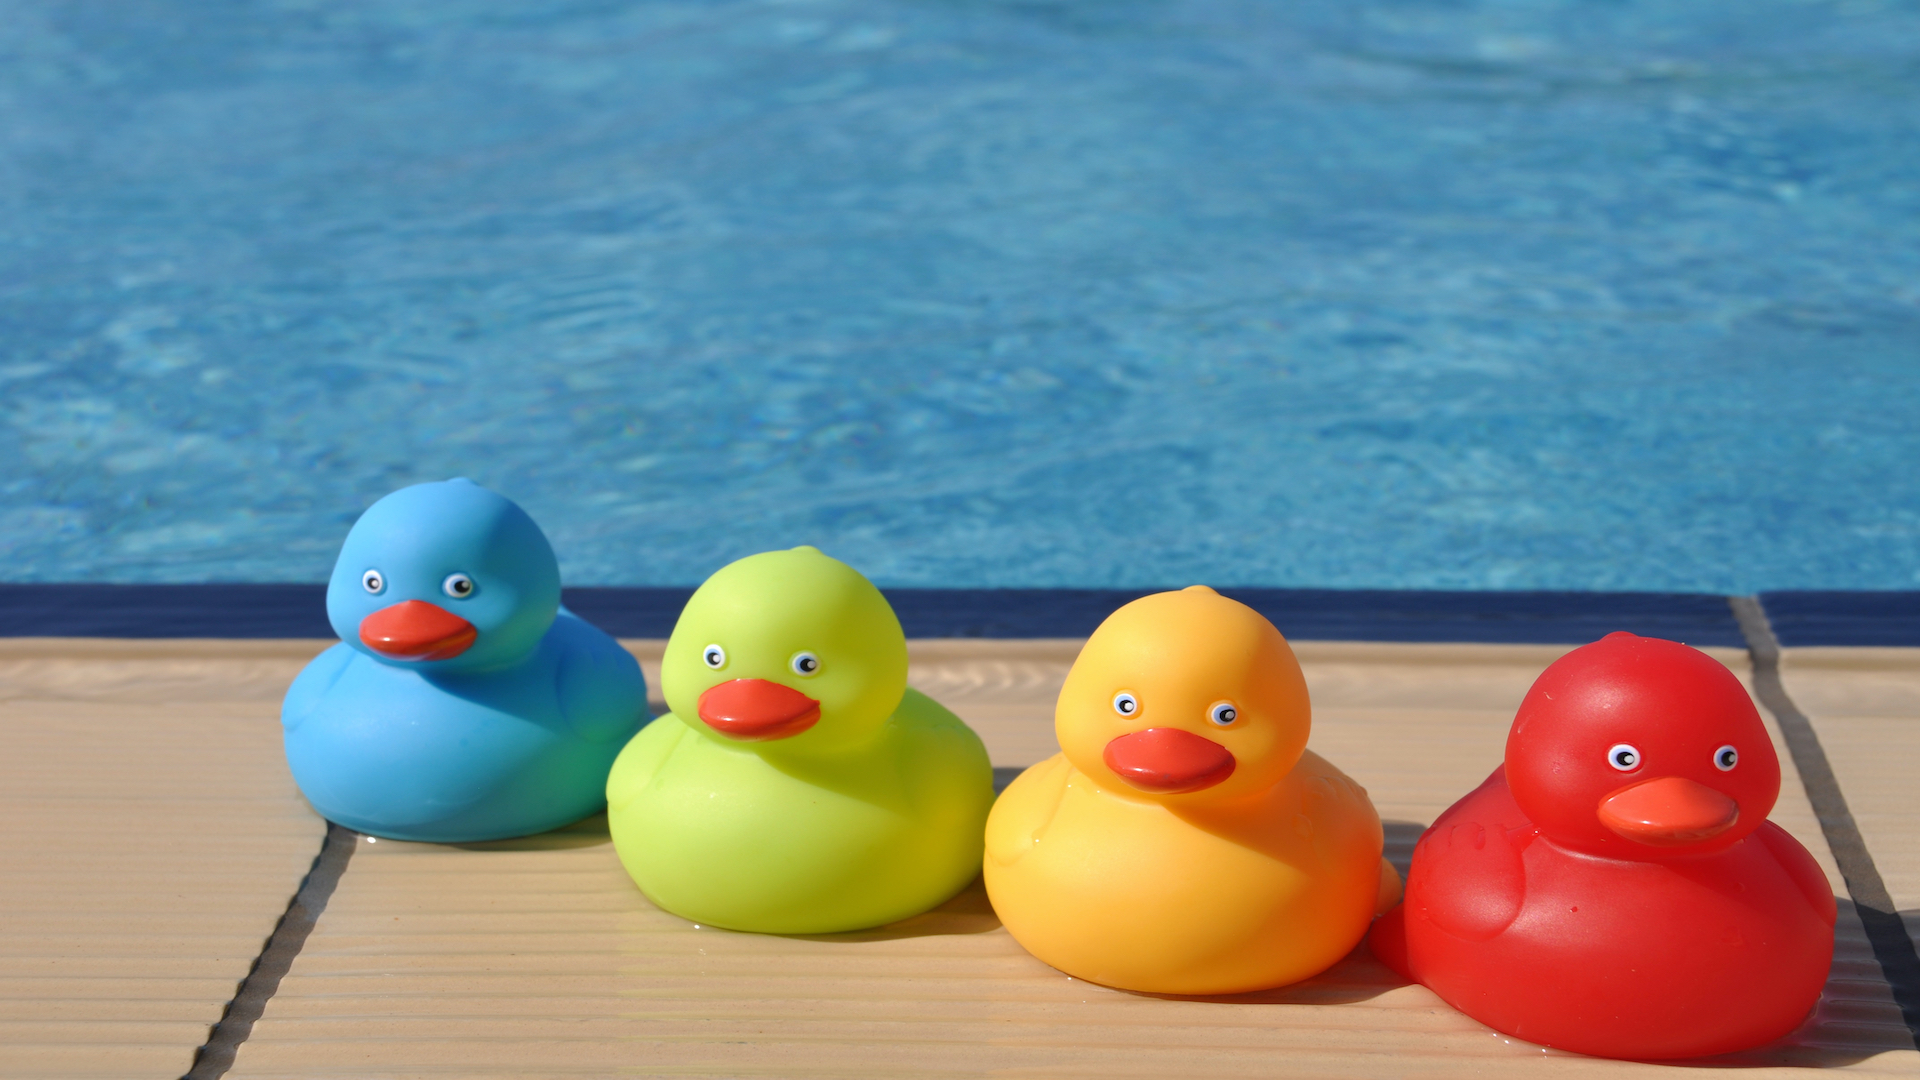 Picture of rubber ducks